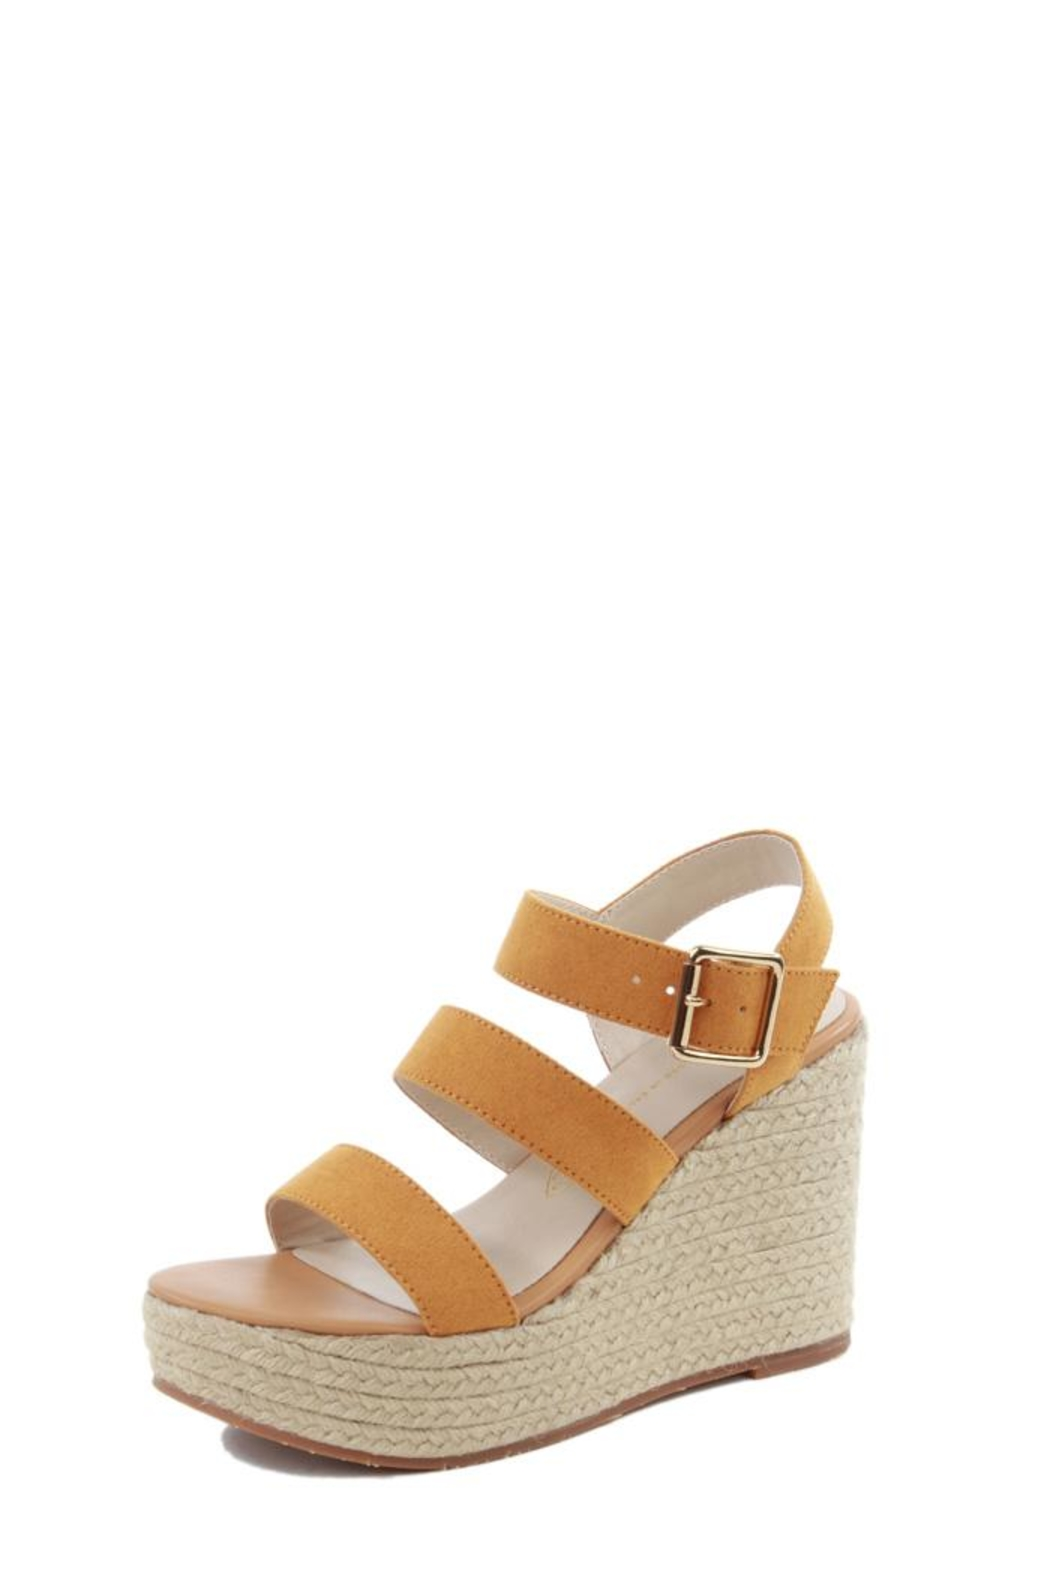 BC Footwear Mustard Wedges - Front Cropped Image